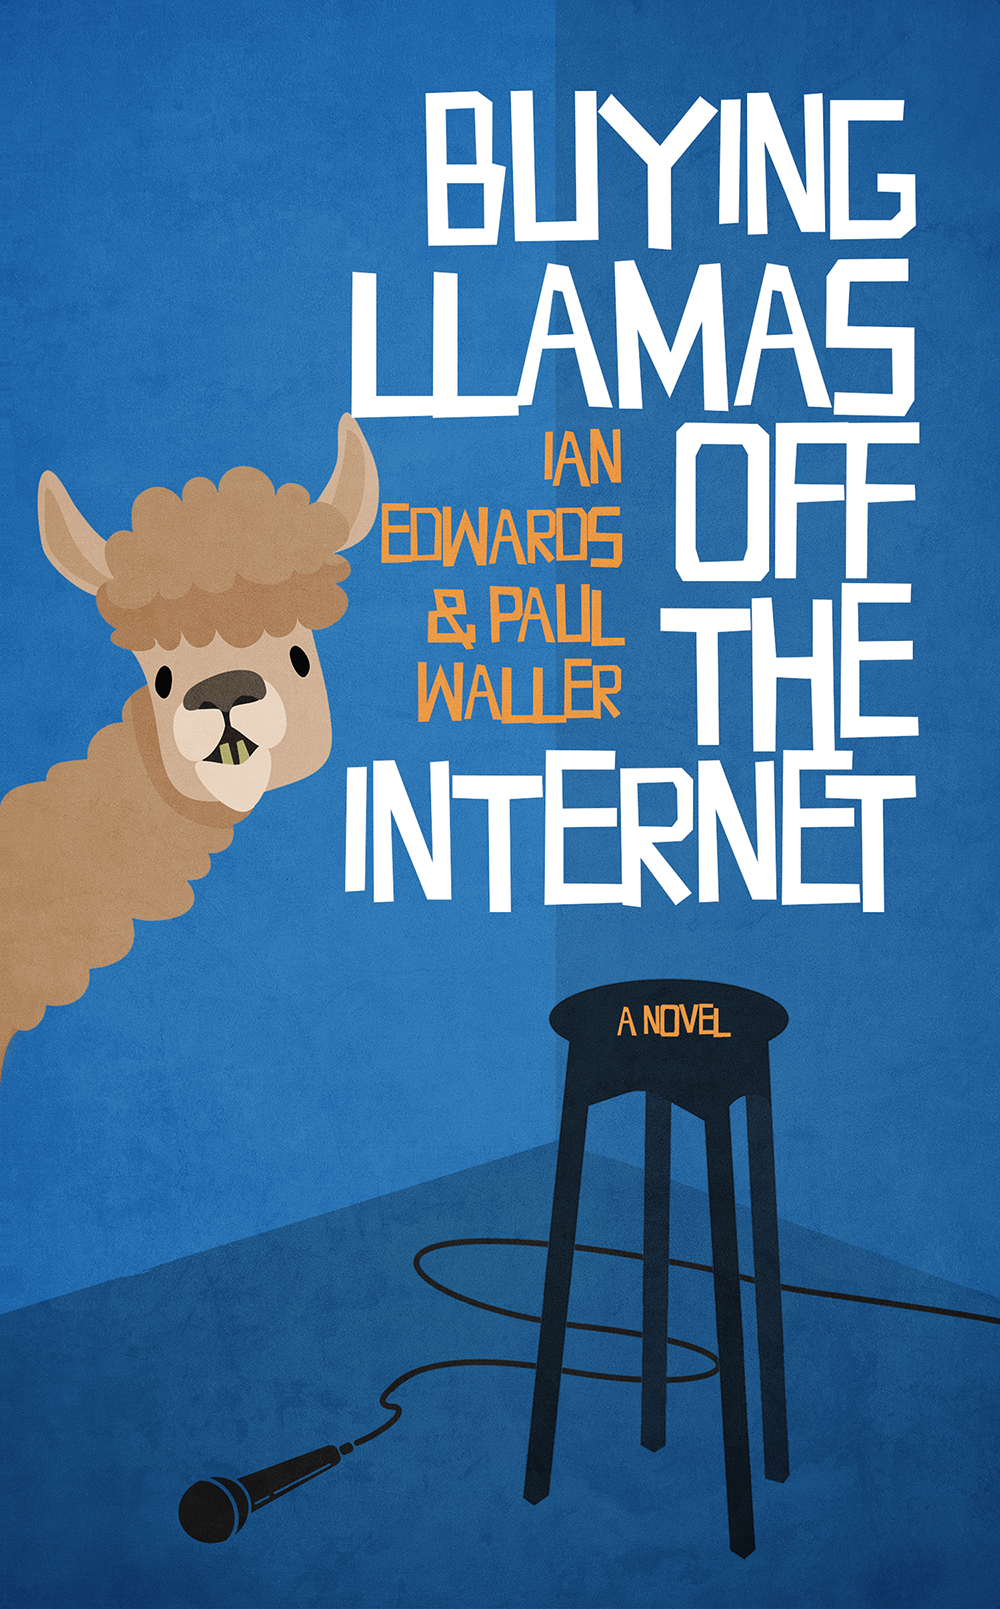 Buying Llamas Off the Internet (Small)